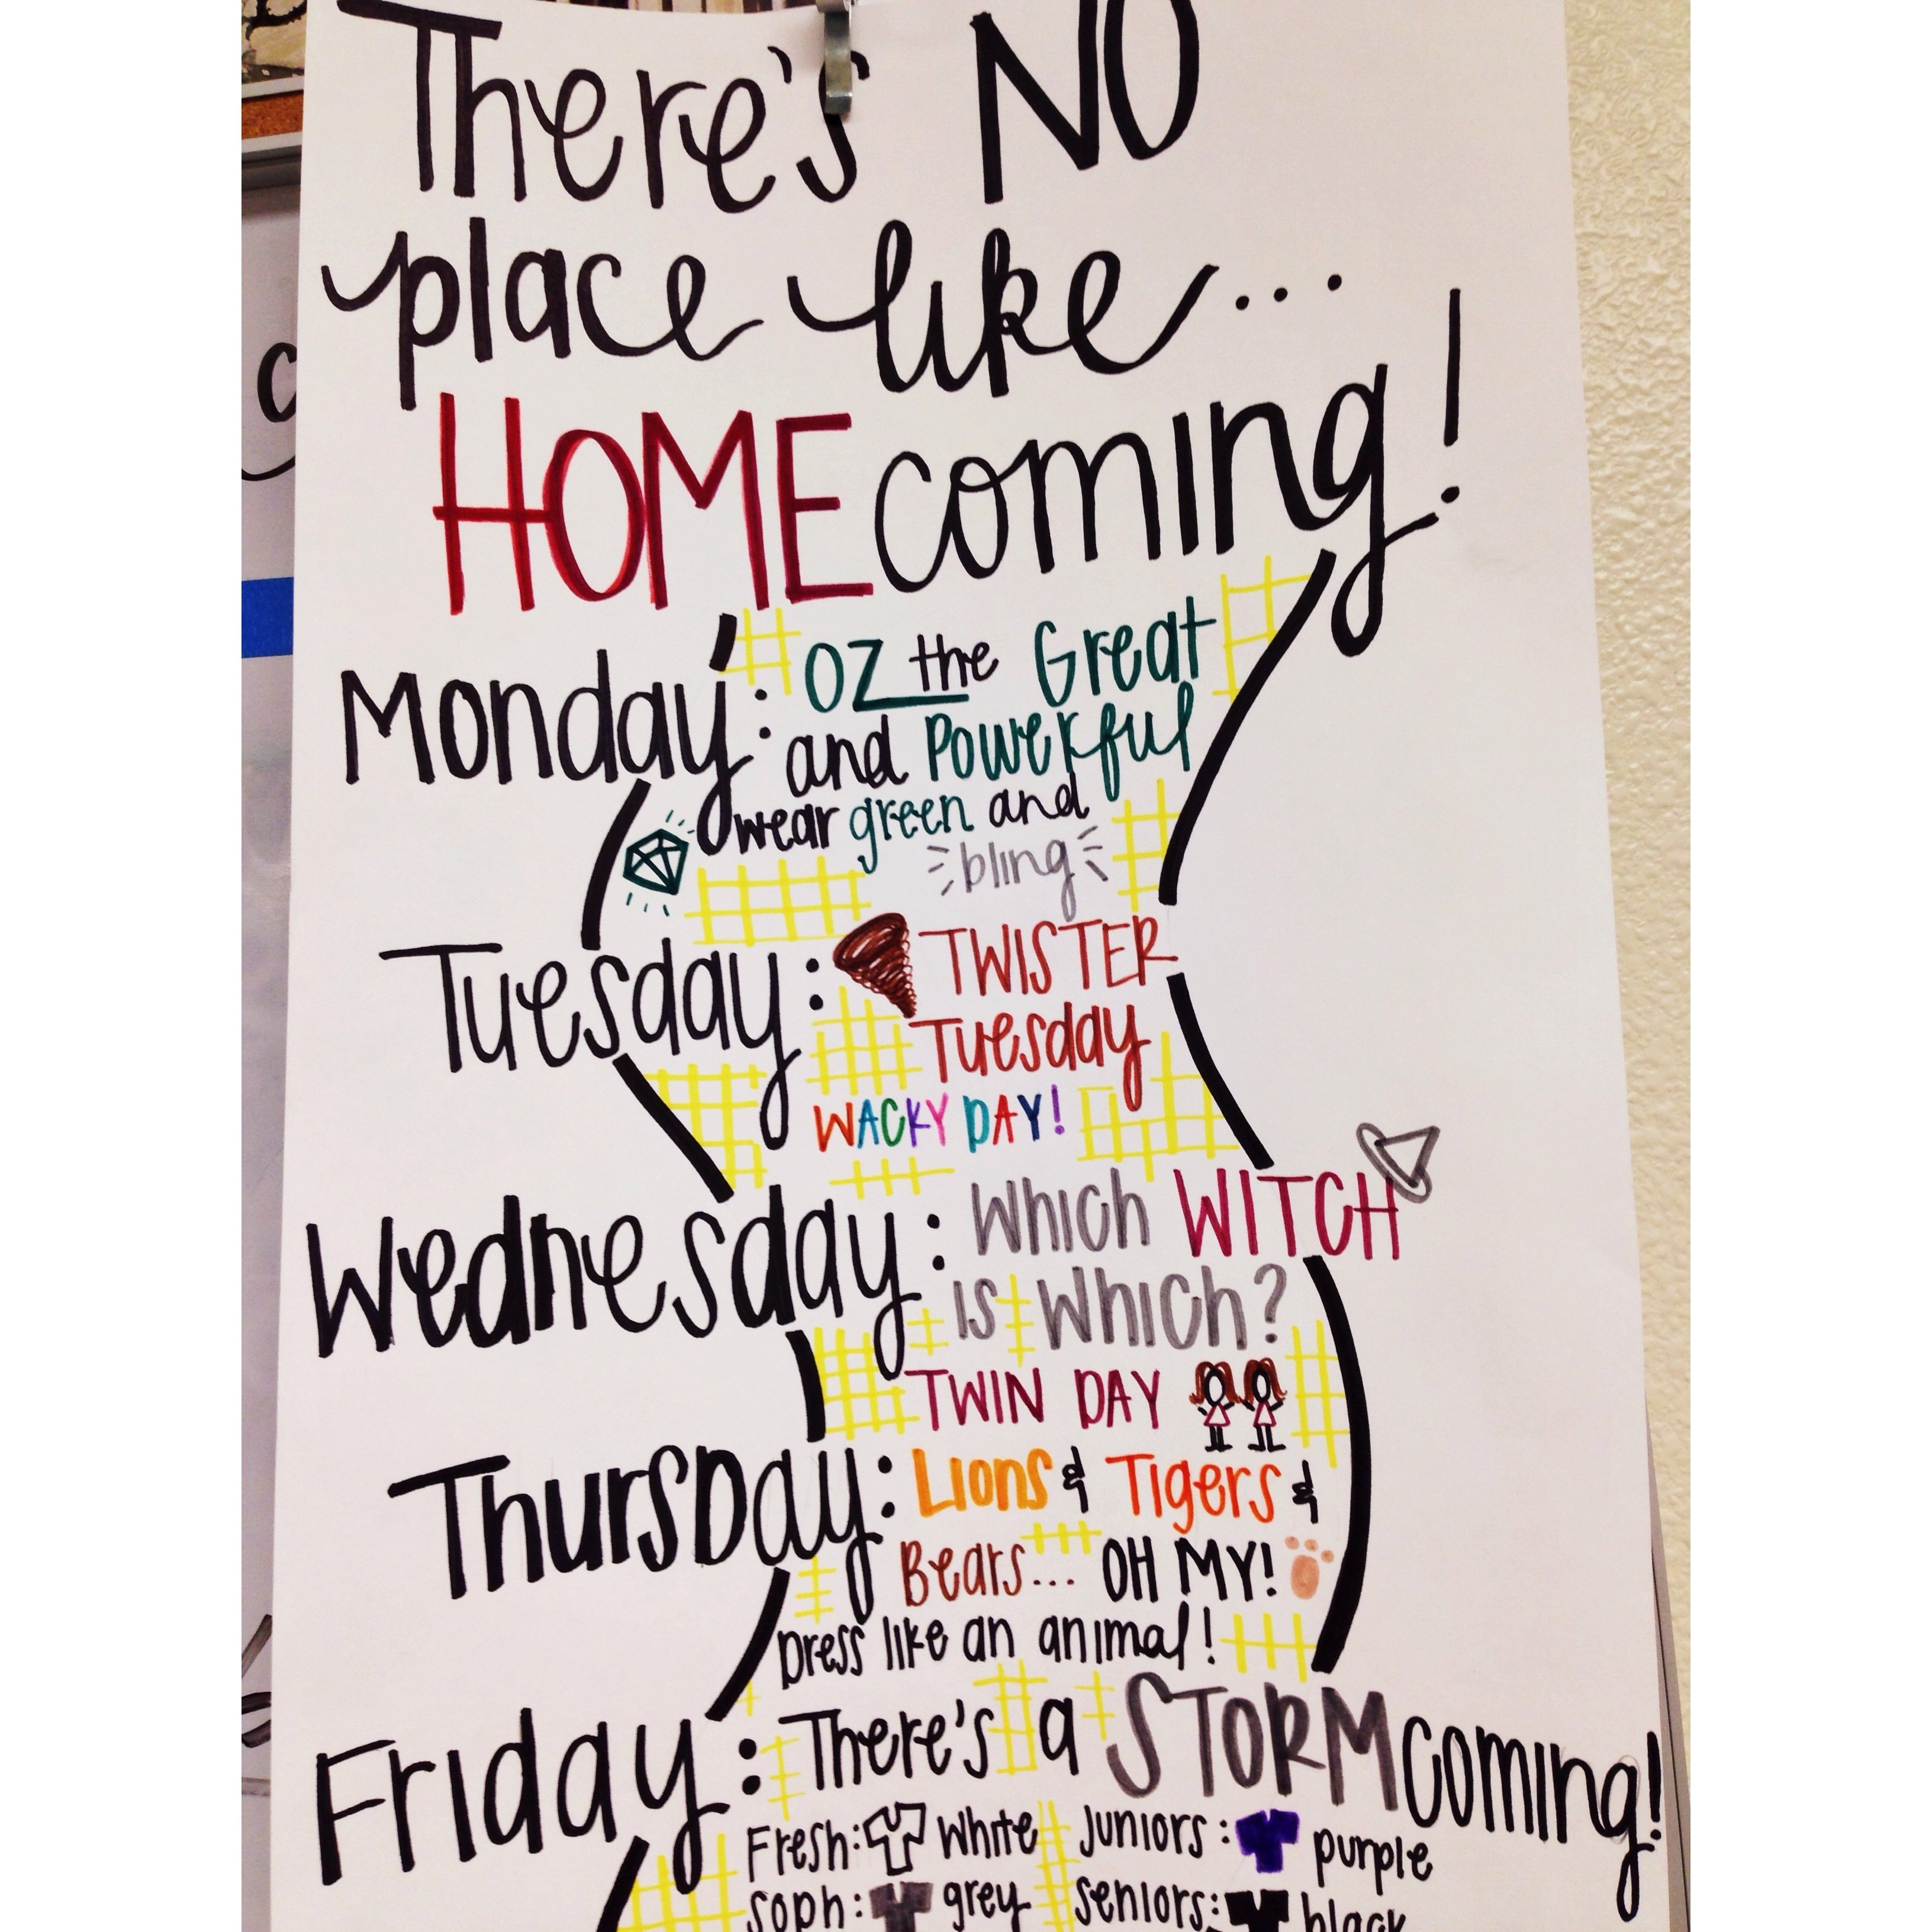 10 Wonderful Homecoming Ideas For High School wizard of oz homecoming theme idea student council pinterest 2020